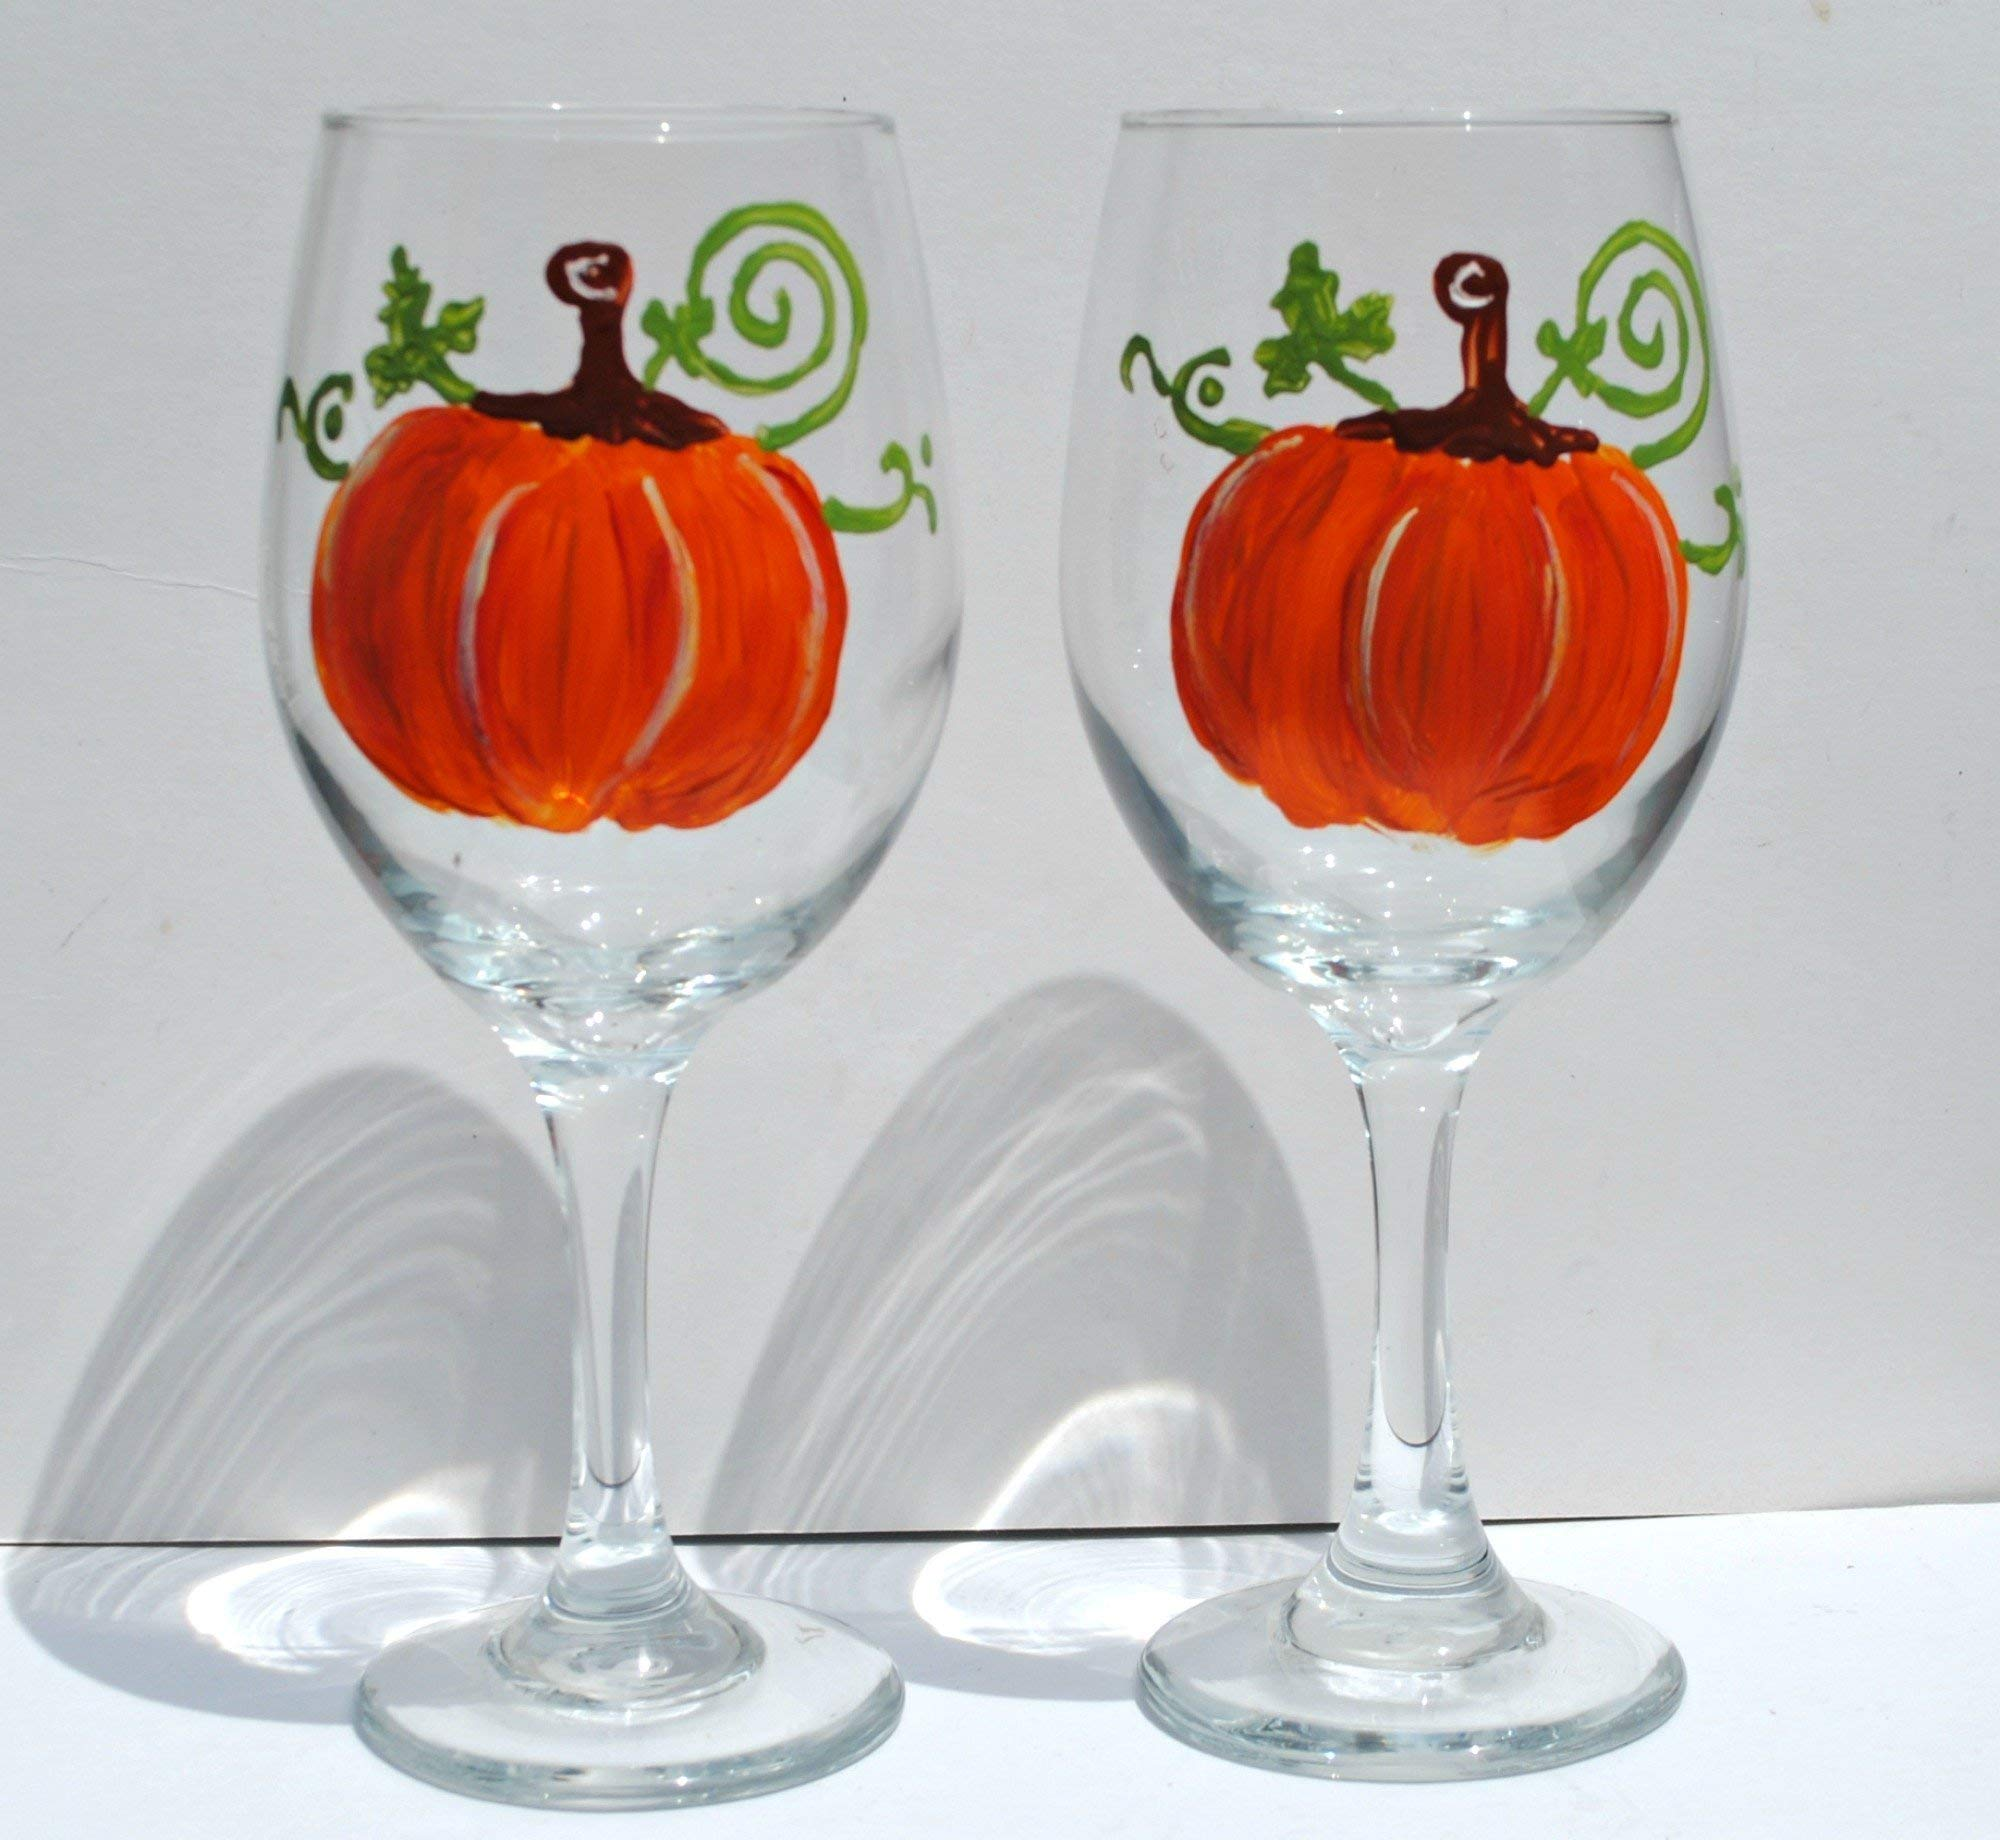 Orange Pumpkin (Set of 2) Hand Painted Stemmed Wine Glasses Fall Home Decor by Atkinson Creations (Image #1)